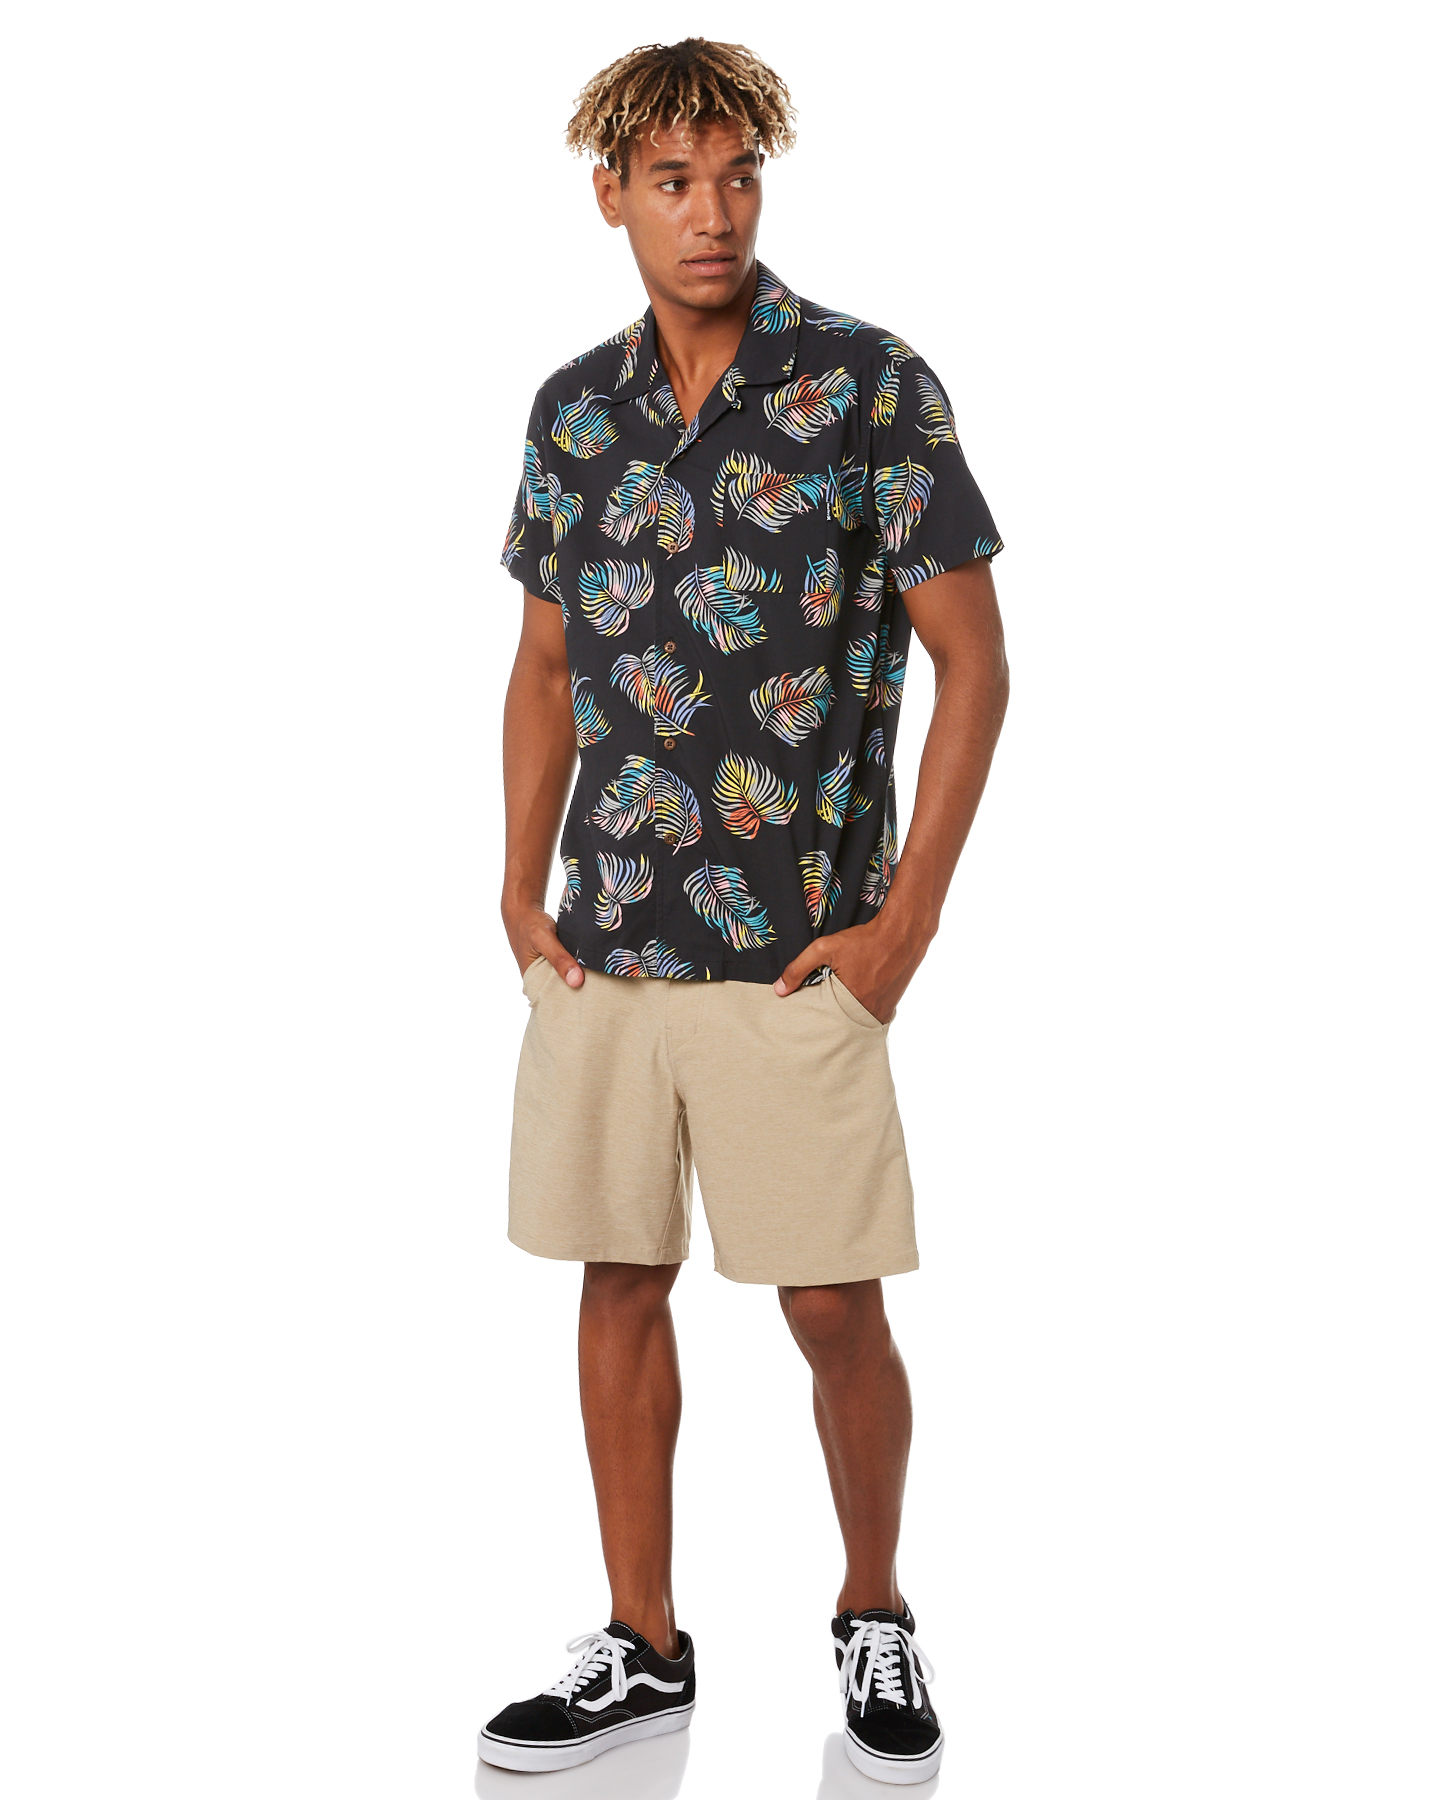 New-Hurley-Men-039-s-Dri-Fit-Chino-Short-21In-Mens-Short-Fitted-Spandex-Grey thumbnail 15